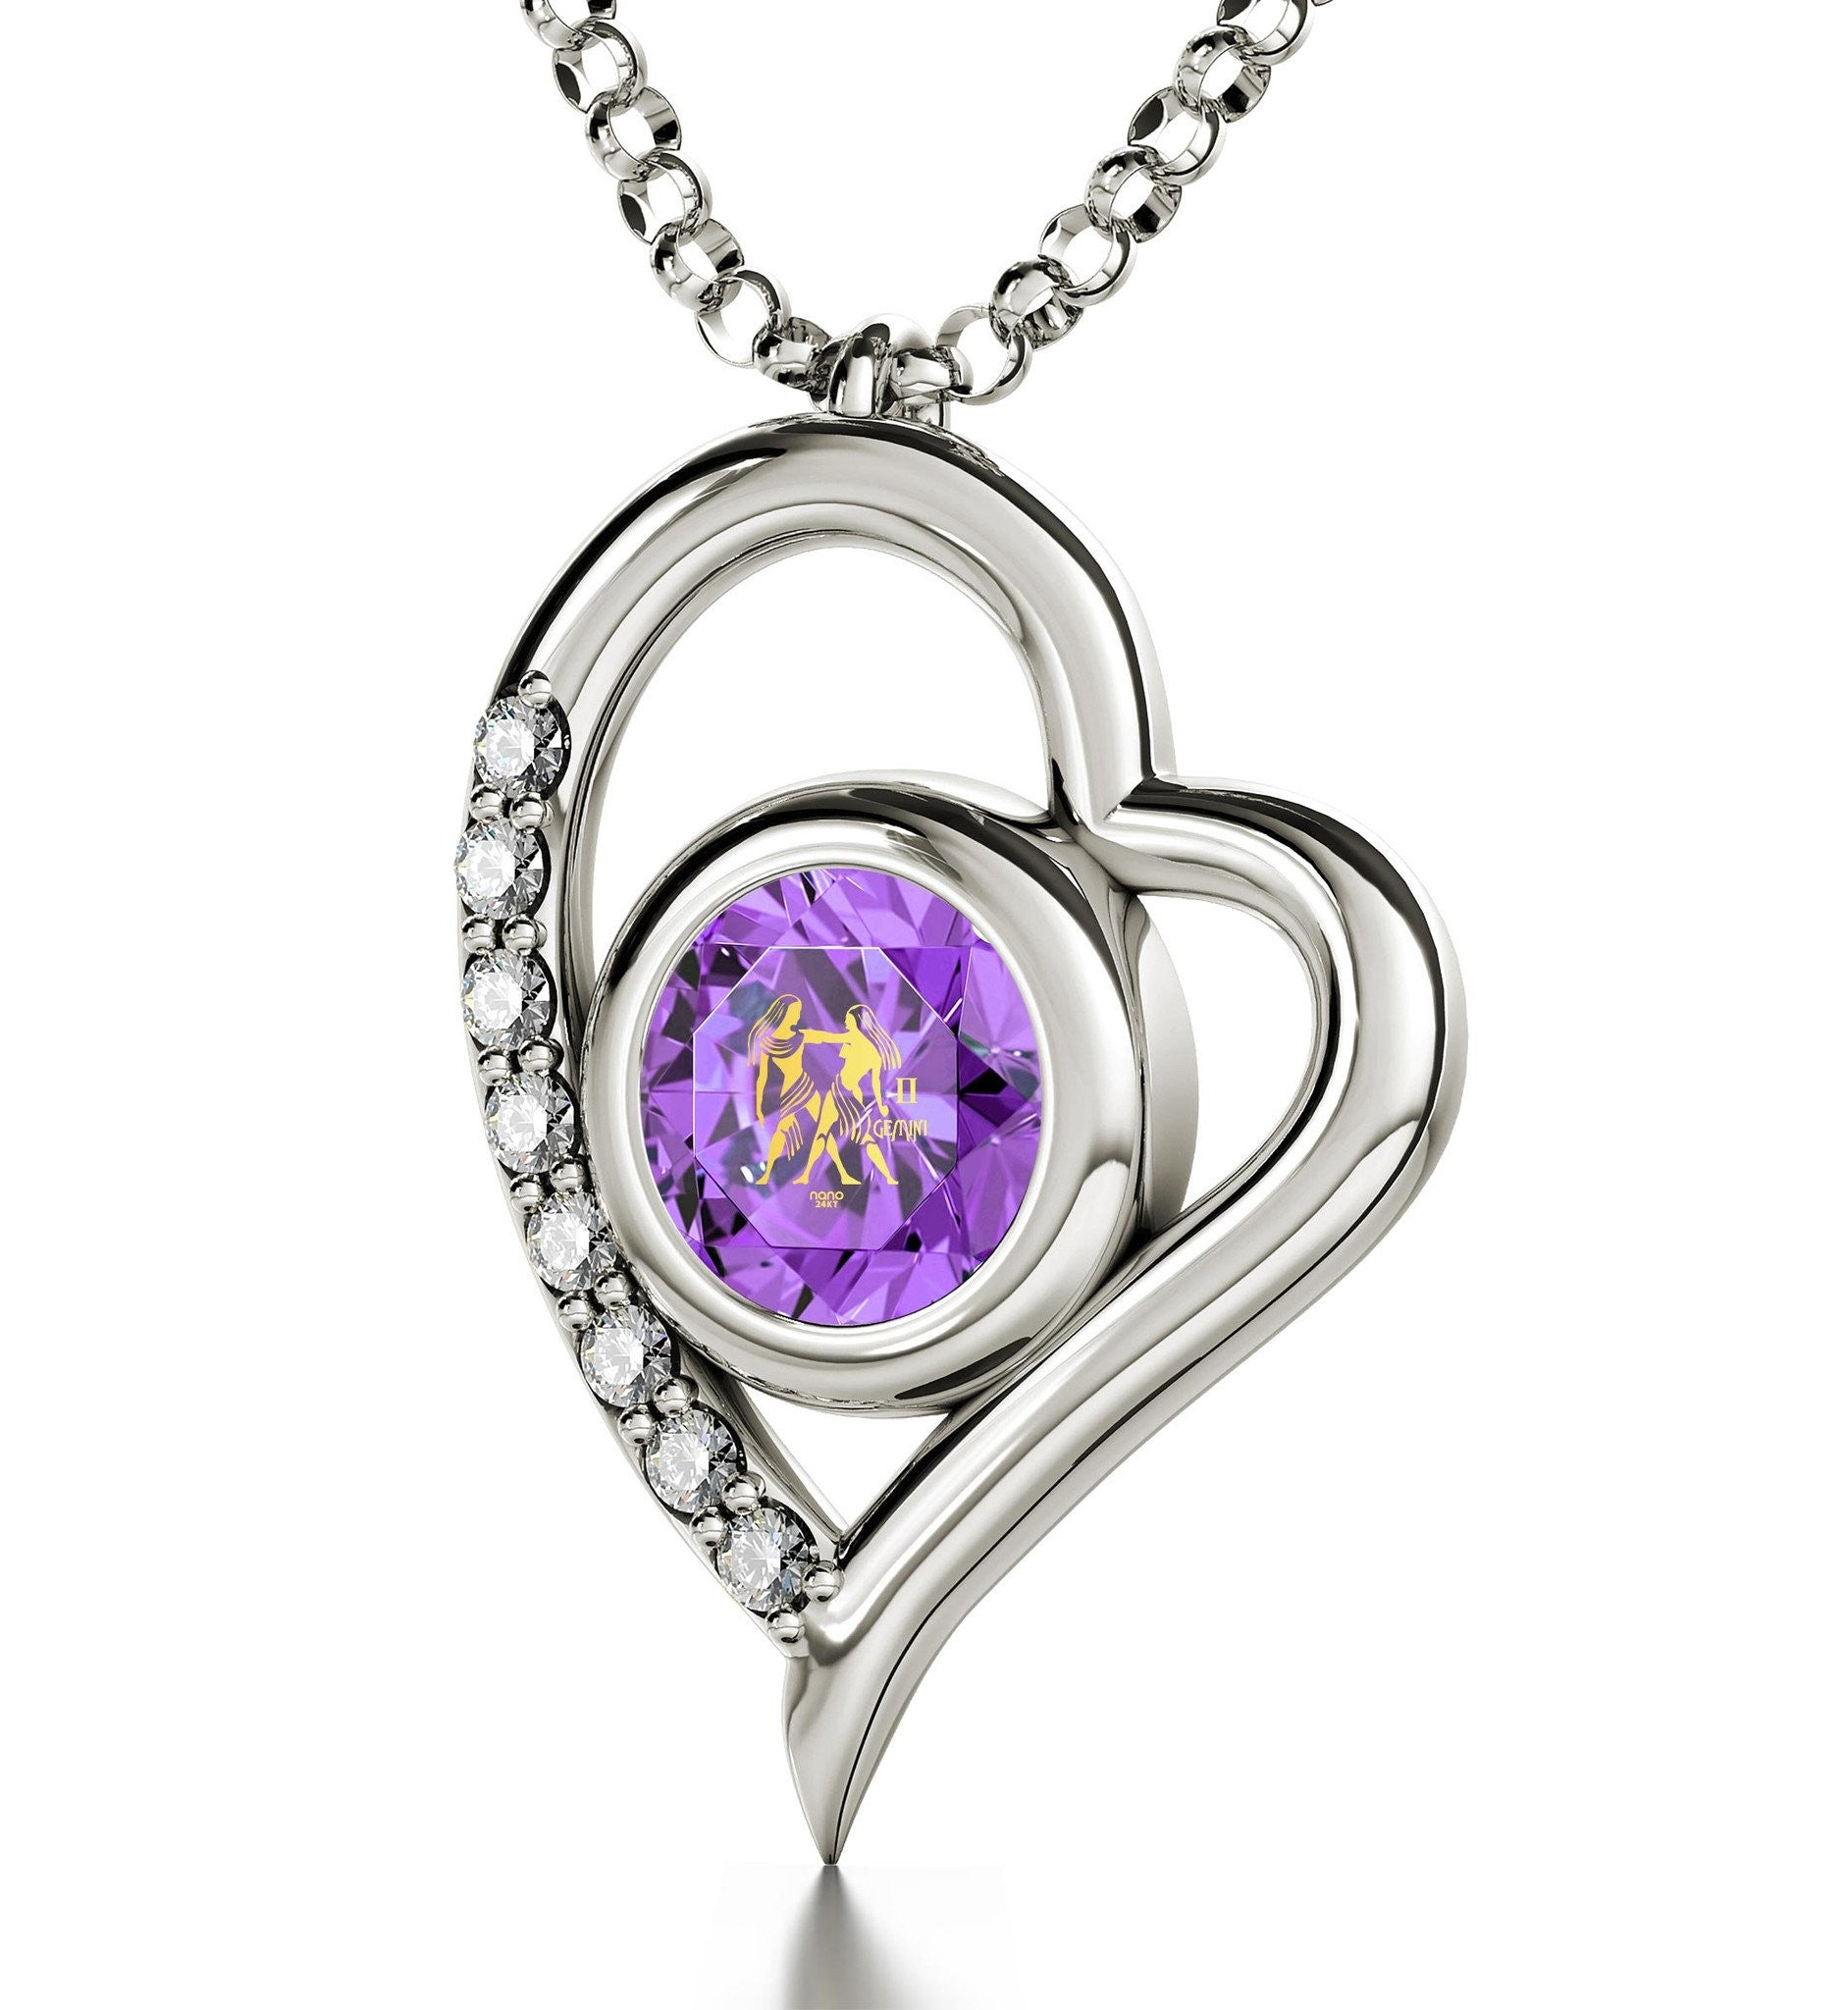 """Gemini Jewelry, Christmas Present Ideas for Girlfriend, Unusual Birthday Gifts for Her, July Birthstone Necklace"""